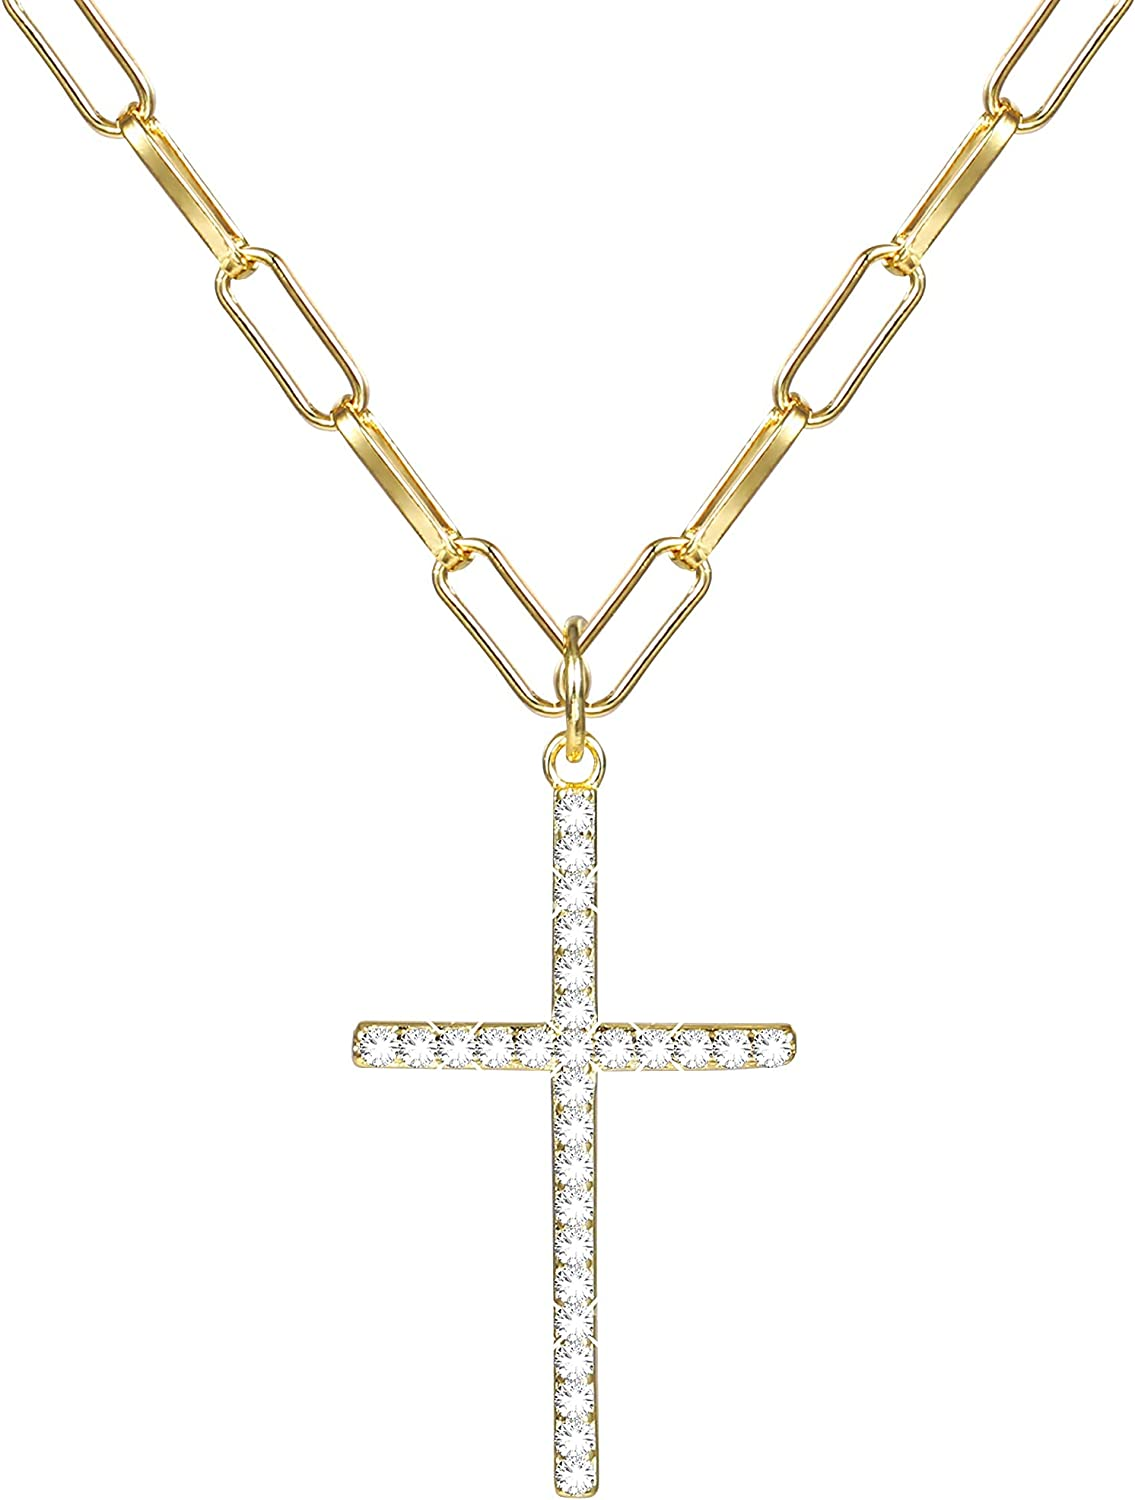 14 K Gold Plated Cross Pendant Necklace - Paperclip Gold Link Chain Necklaces for Women 24 Inch Long